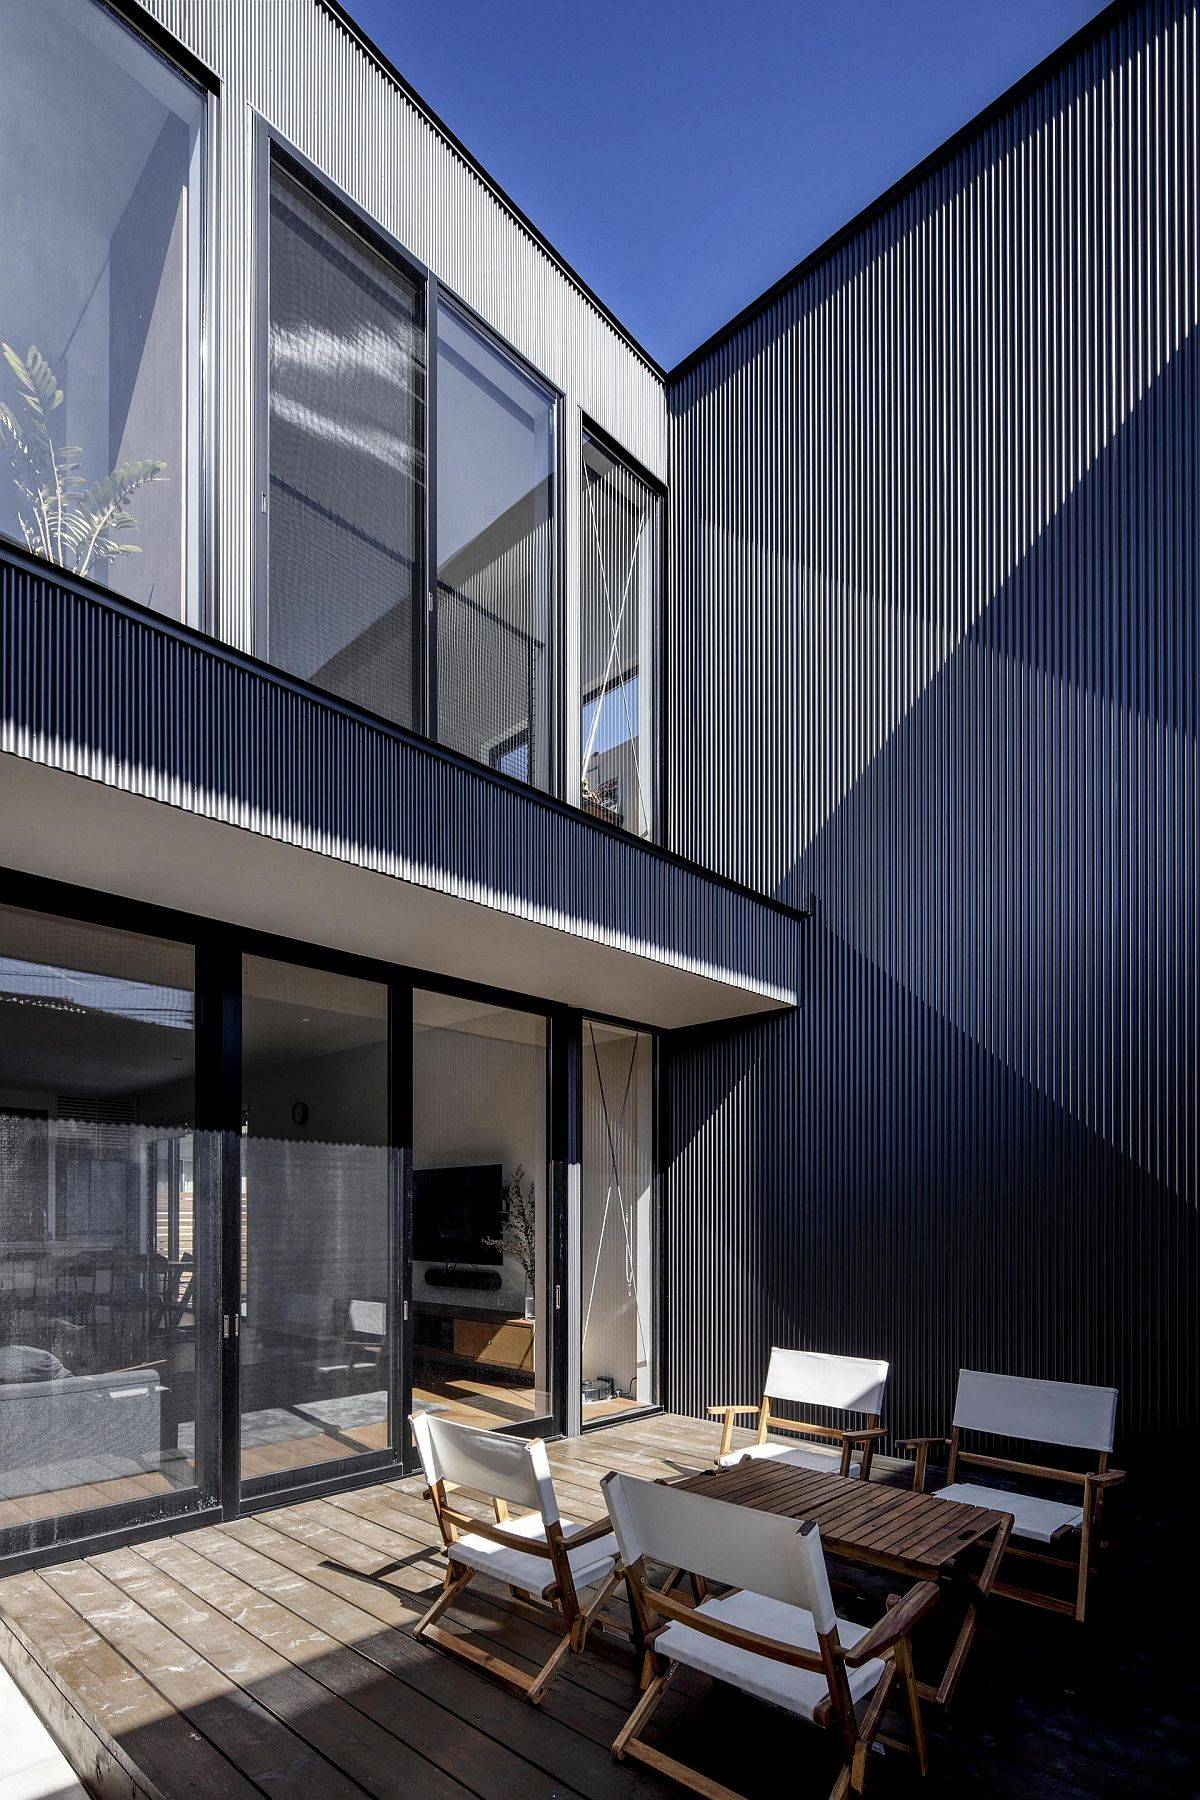 Central-courtyard-of-the-japanese-home-promises-complete-privacy-47165